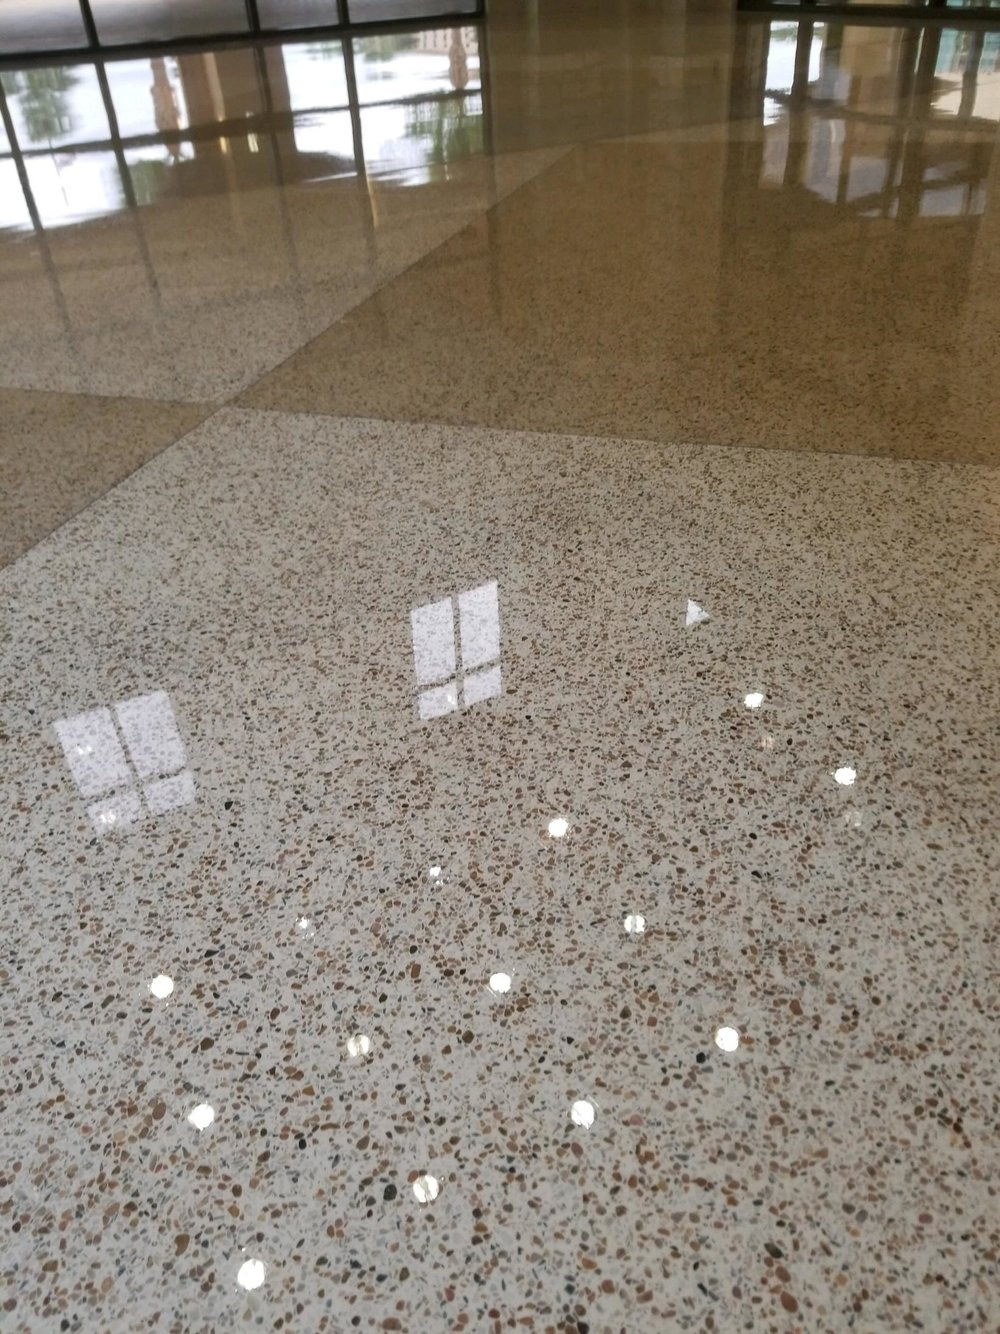 No Worries Coating - Our new coatings offer durability, beautiful shine, and fantastic low maintenance.